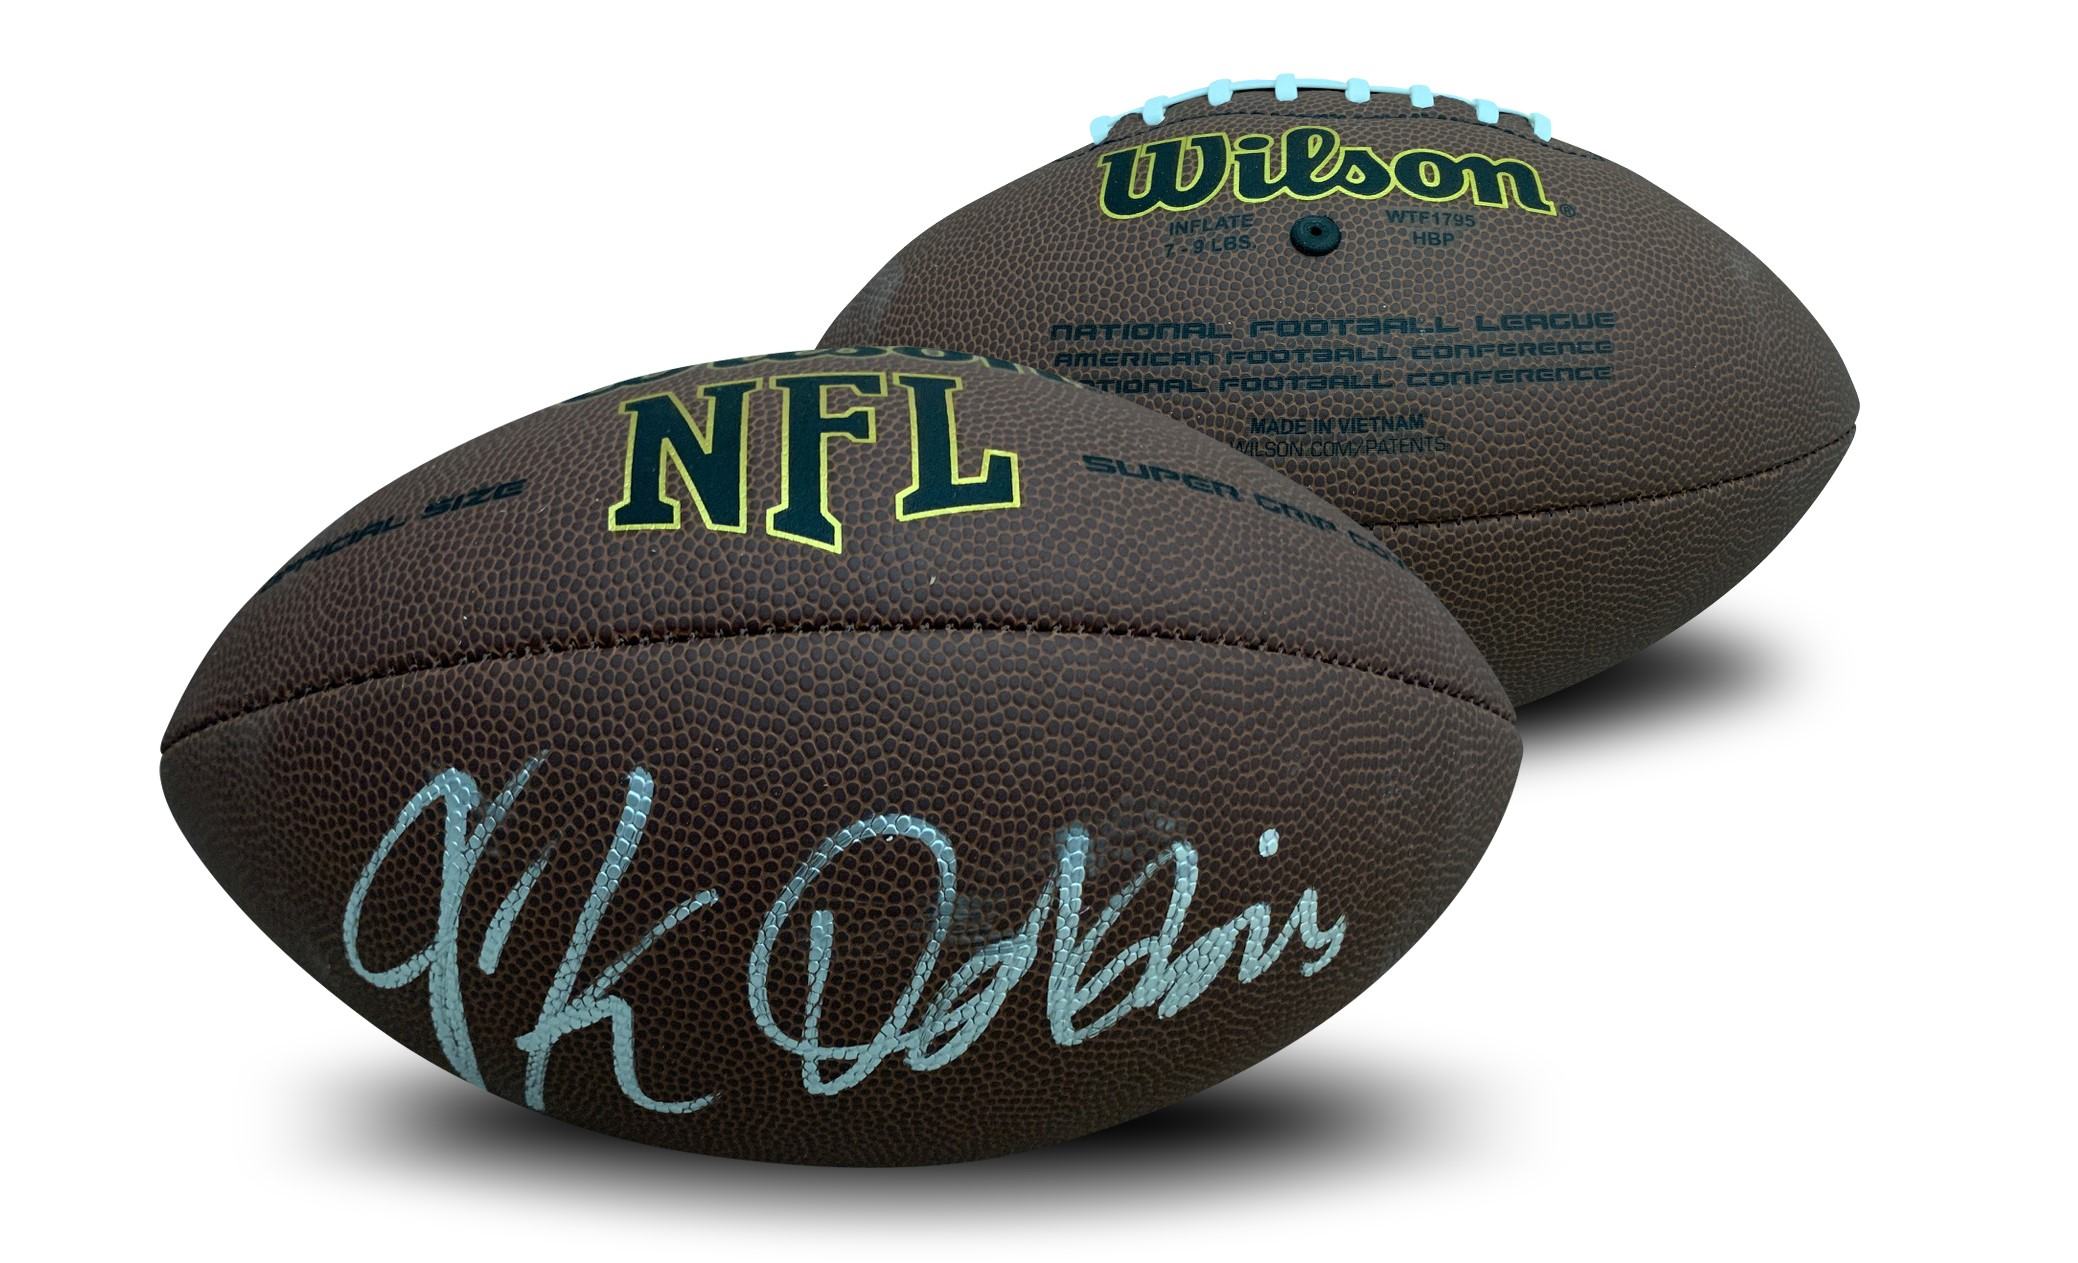 "JK Dobbins Autographed NFL Signed Football JSA COA 2 Former Ohio State star running back and potential 2020 NFL Draft 1st round pick JK Dobbins has autographed this officially licensed NFL full size replica football. Autograph is authenticated by James Spence Authentication (JSA). Comes with JSA certificate of authenticity and matching sticker verified on their website and COA with same # on it. JSA is one of the world's leading authenticator of autographs. It is a ""witness"" COA, meaning a representative from JSA was present for the signing with Dobbins and witnessed him signing your item. 100% authentic.  Please note there is a slight smudge of the signature.  Receive exact item shown."